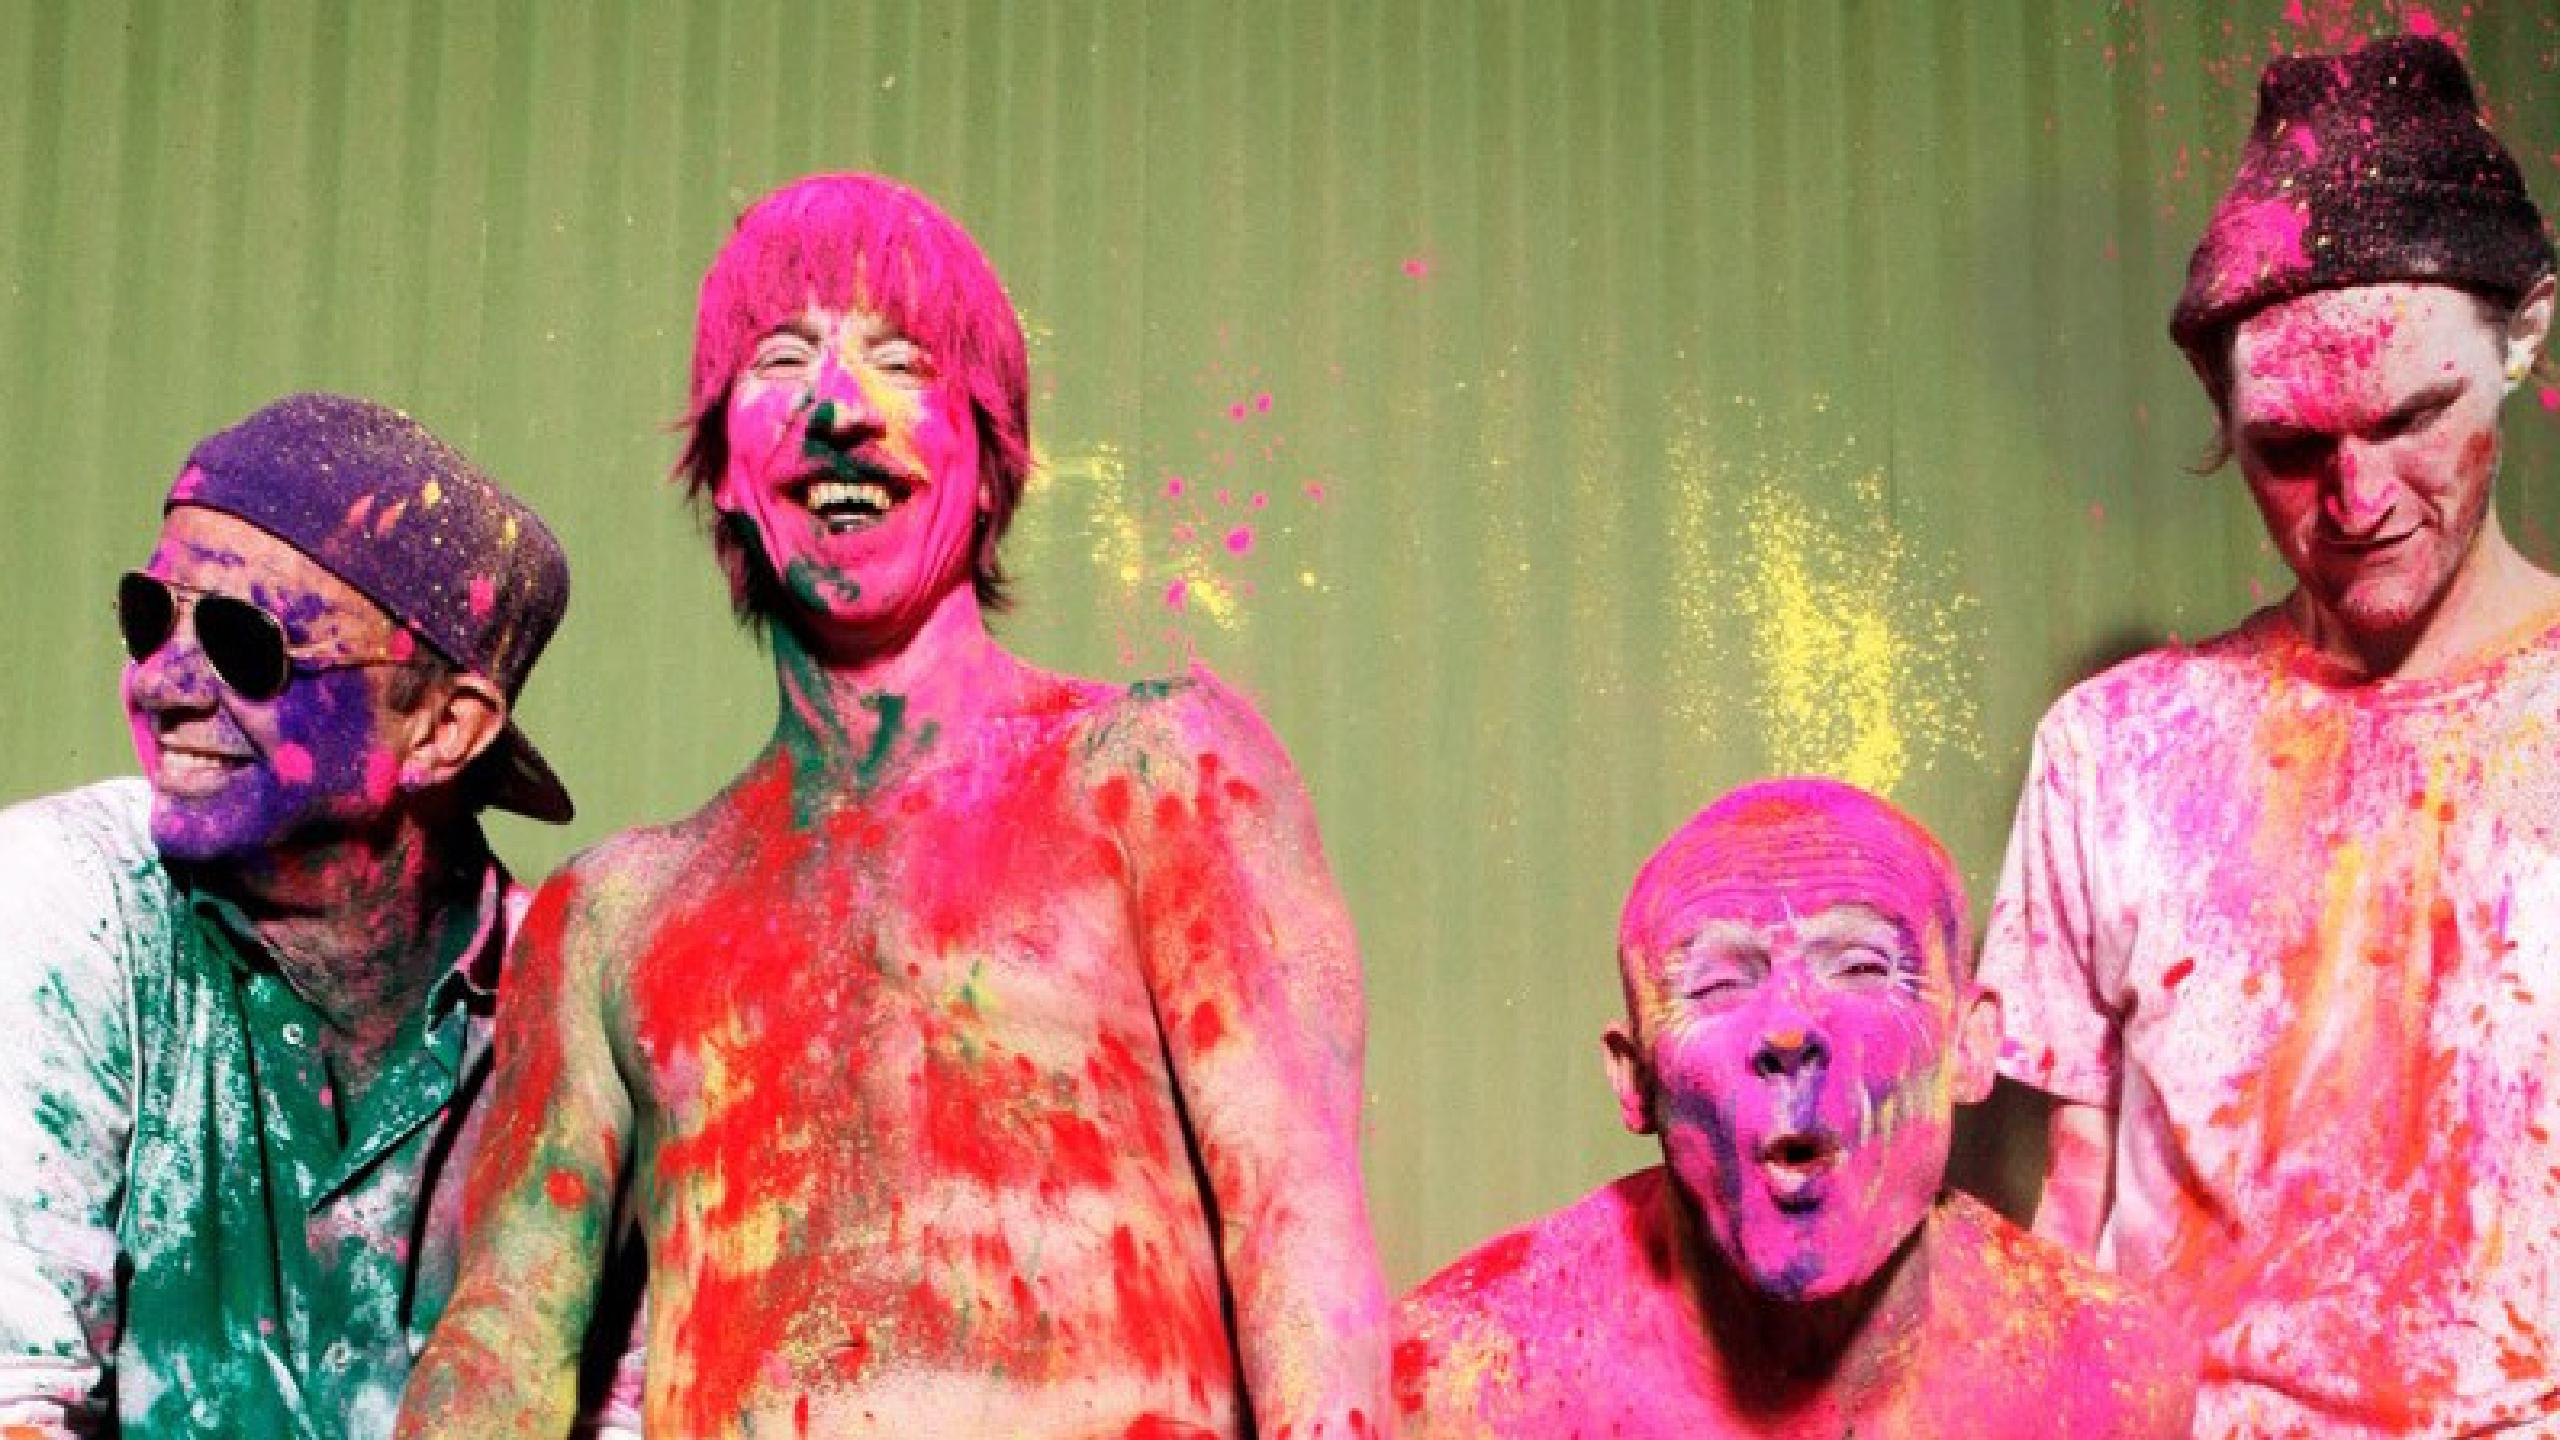 Chili Peppers Tour 2020 Red Hot Chili Peppers tour dates 2019 2020. Red Hot Chili Peppers